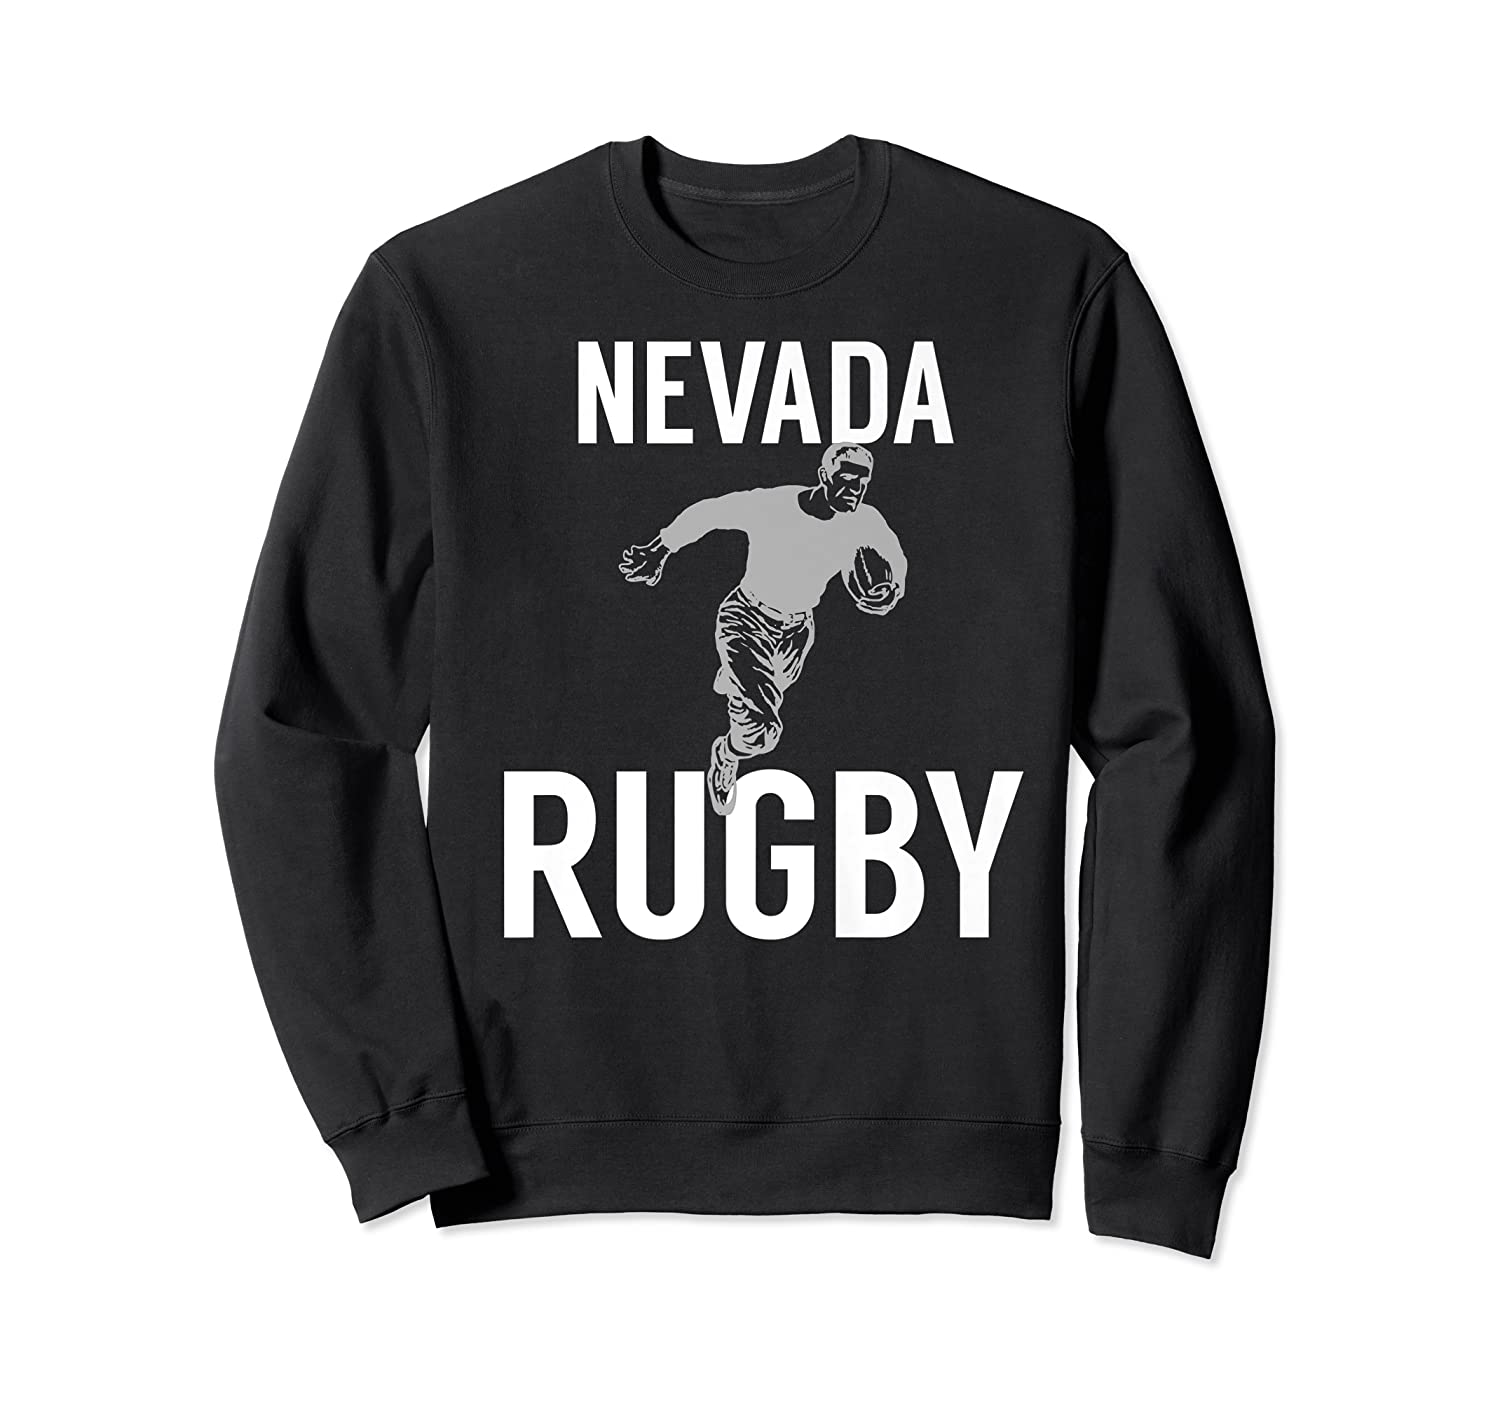 Nevada Rugby Player T-shirt Crewneck Sweater